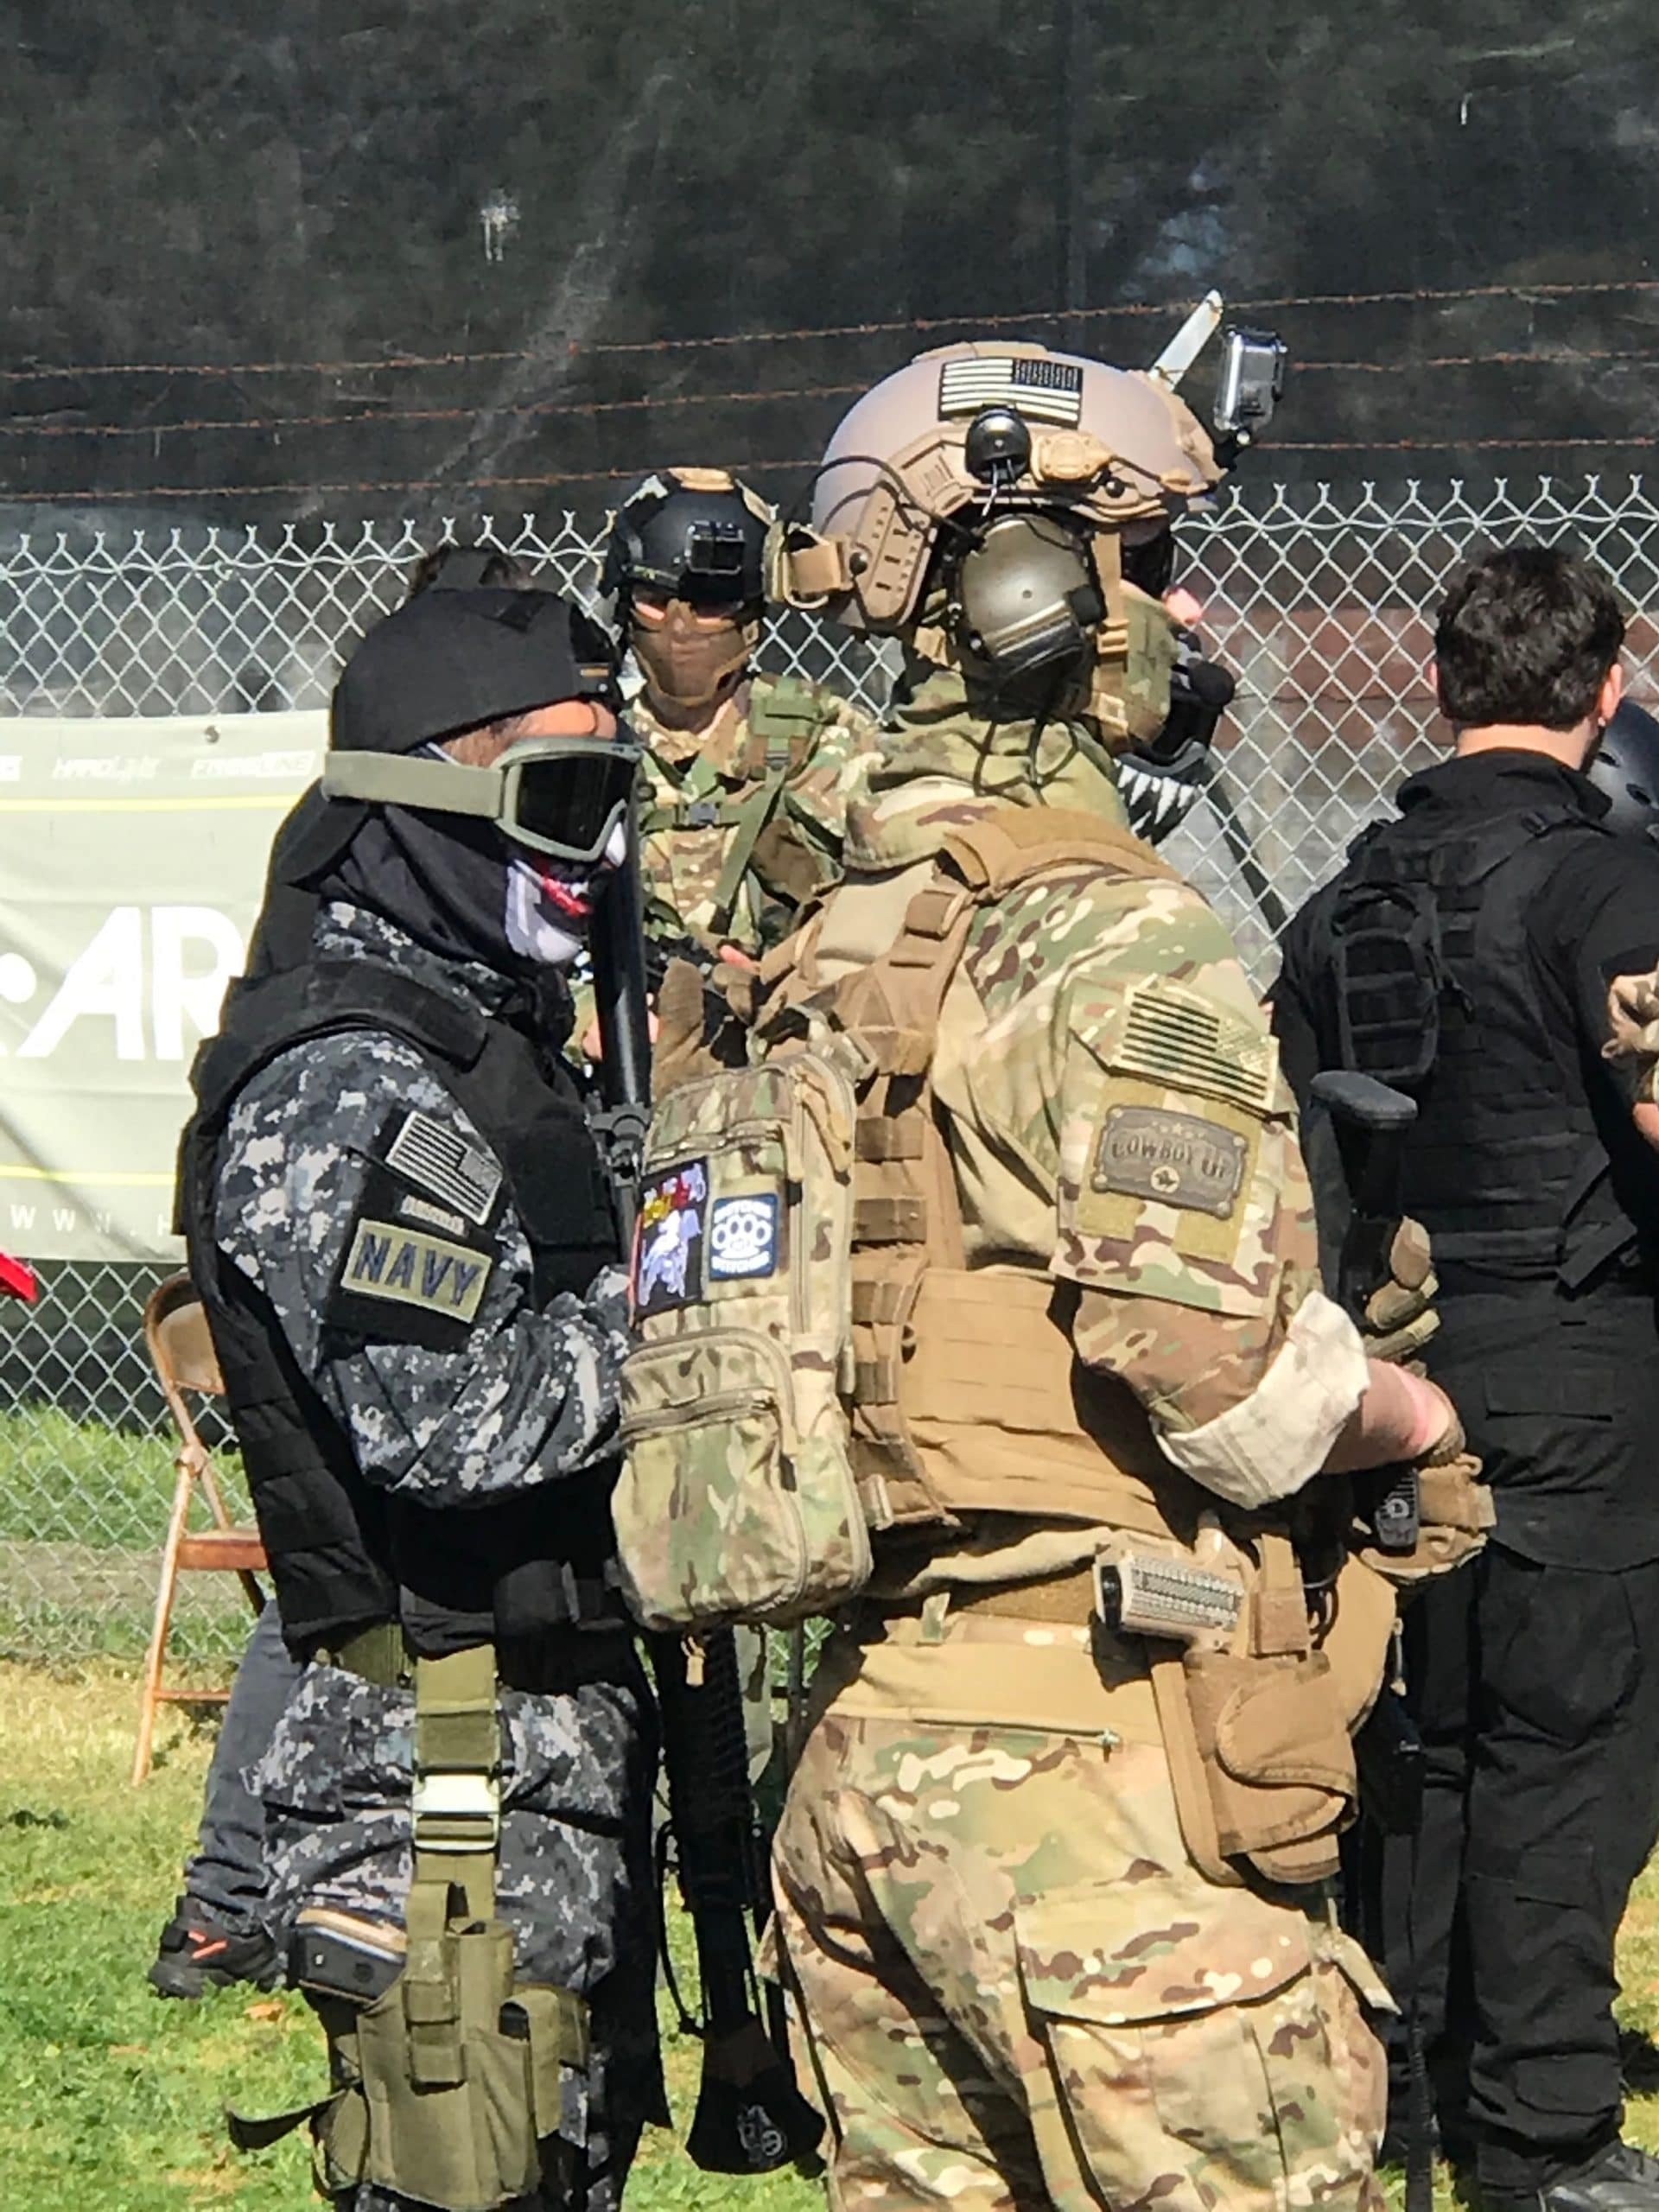 Photo of Airsoft players